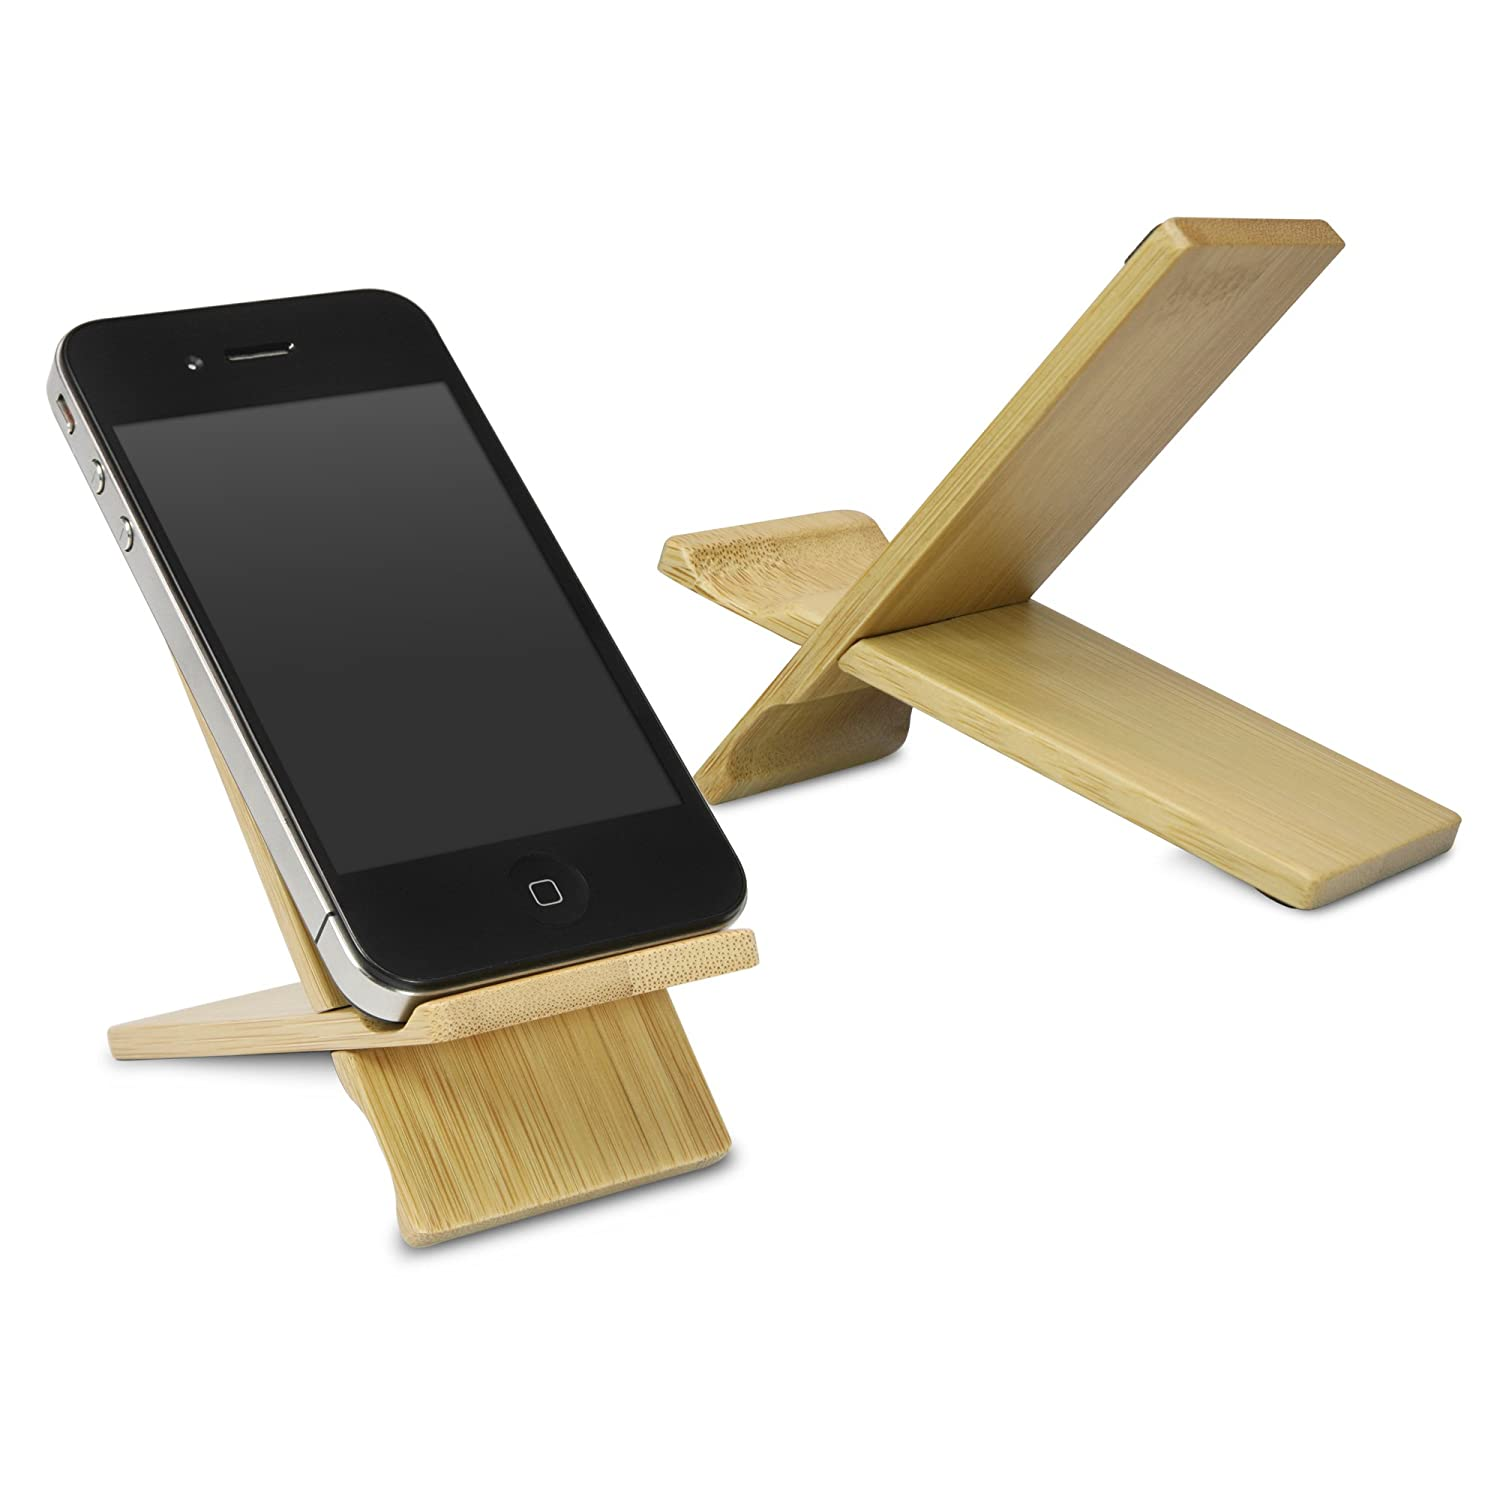 BoxWave Huawei G6310 Bamboo Natural Panel Stand, Premium Bamboo, Real Wood Stand for your Huawei G6310 - Small boxwave htc radar bamboo natural panel stand premium bamboo real wood stand for your htc radar small